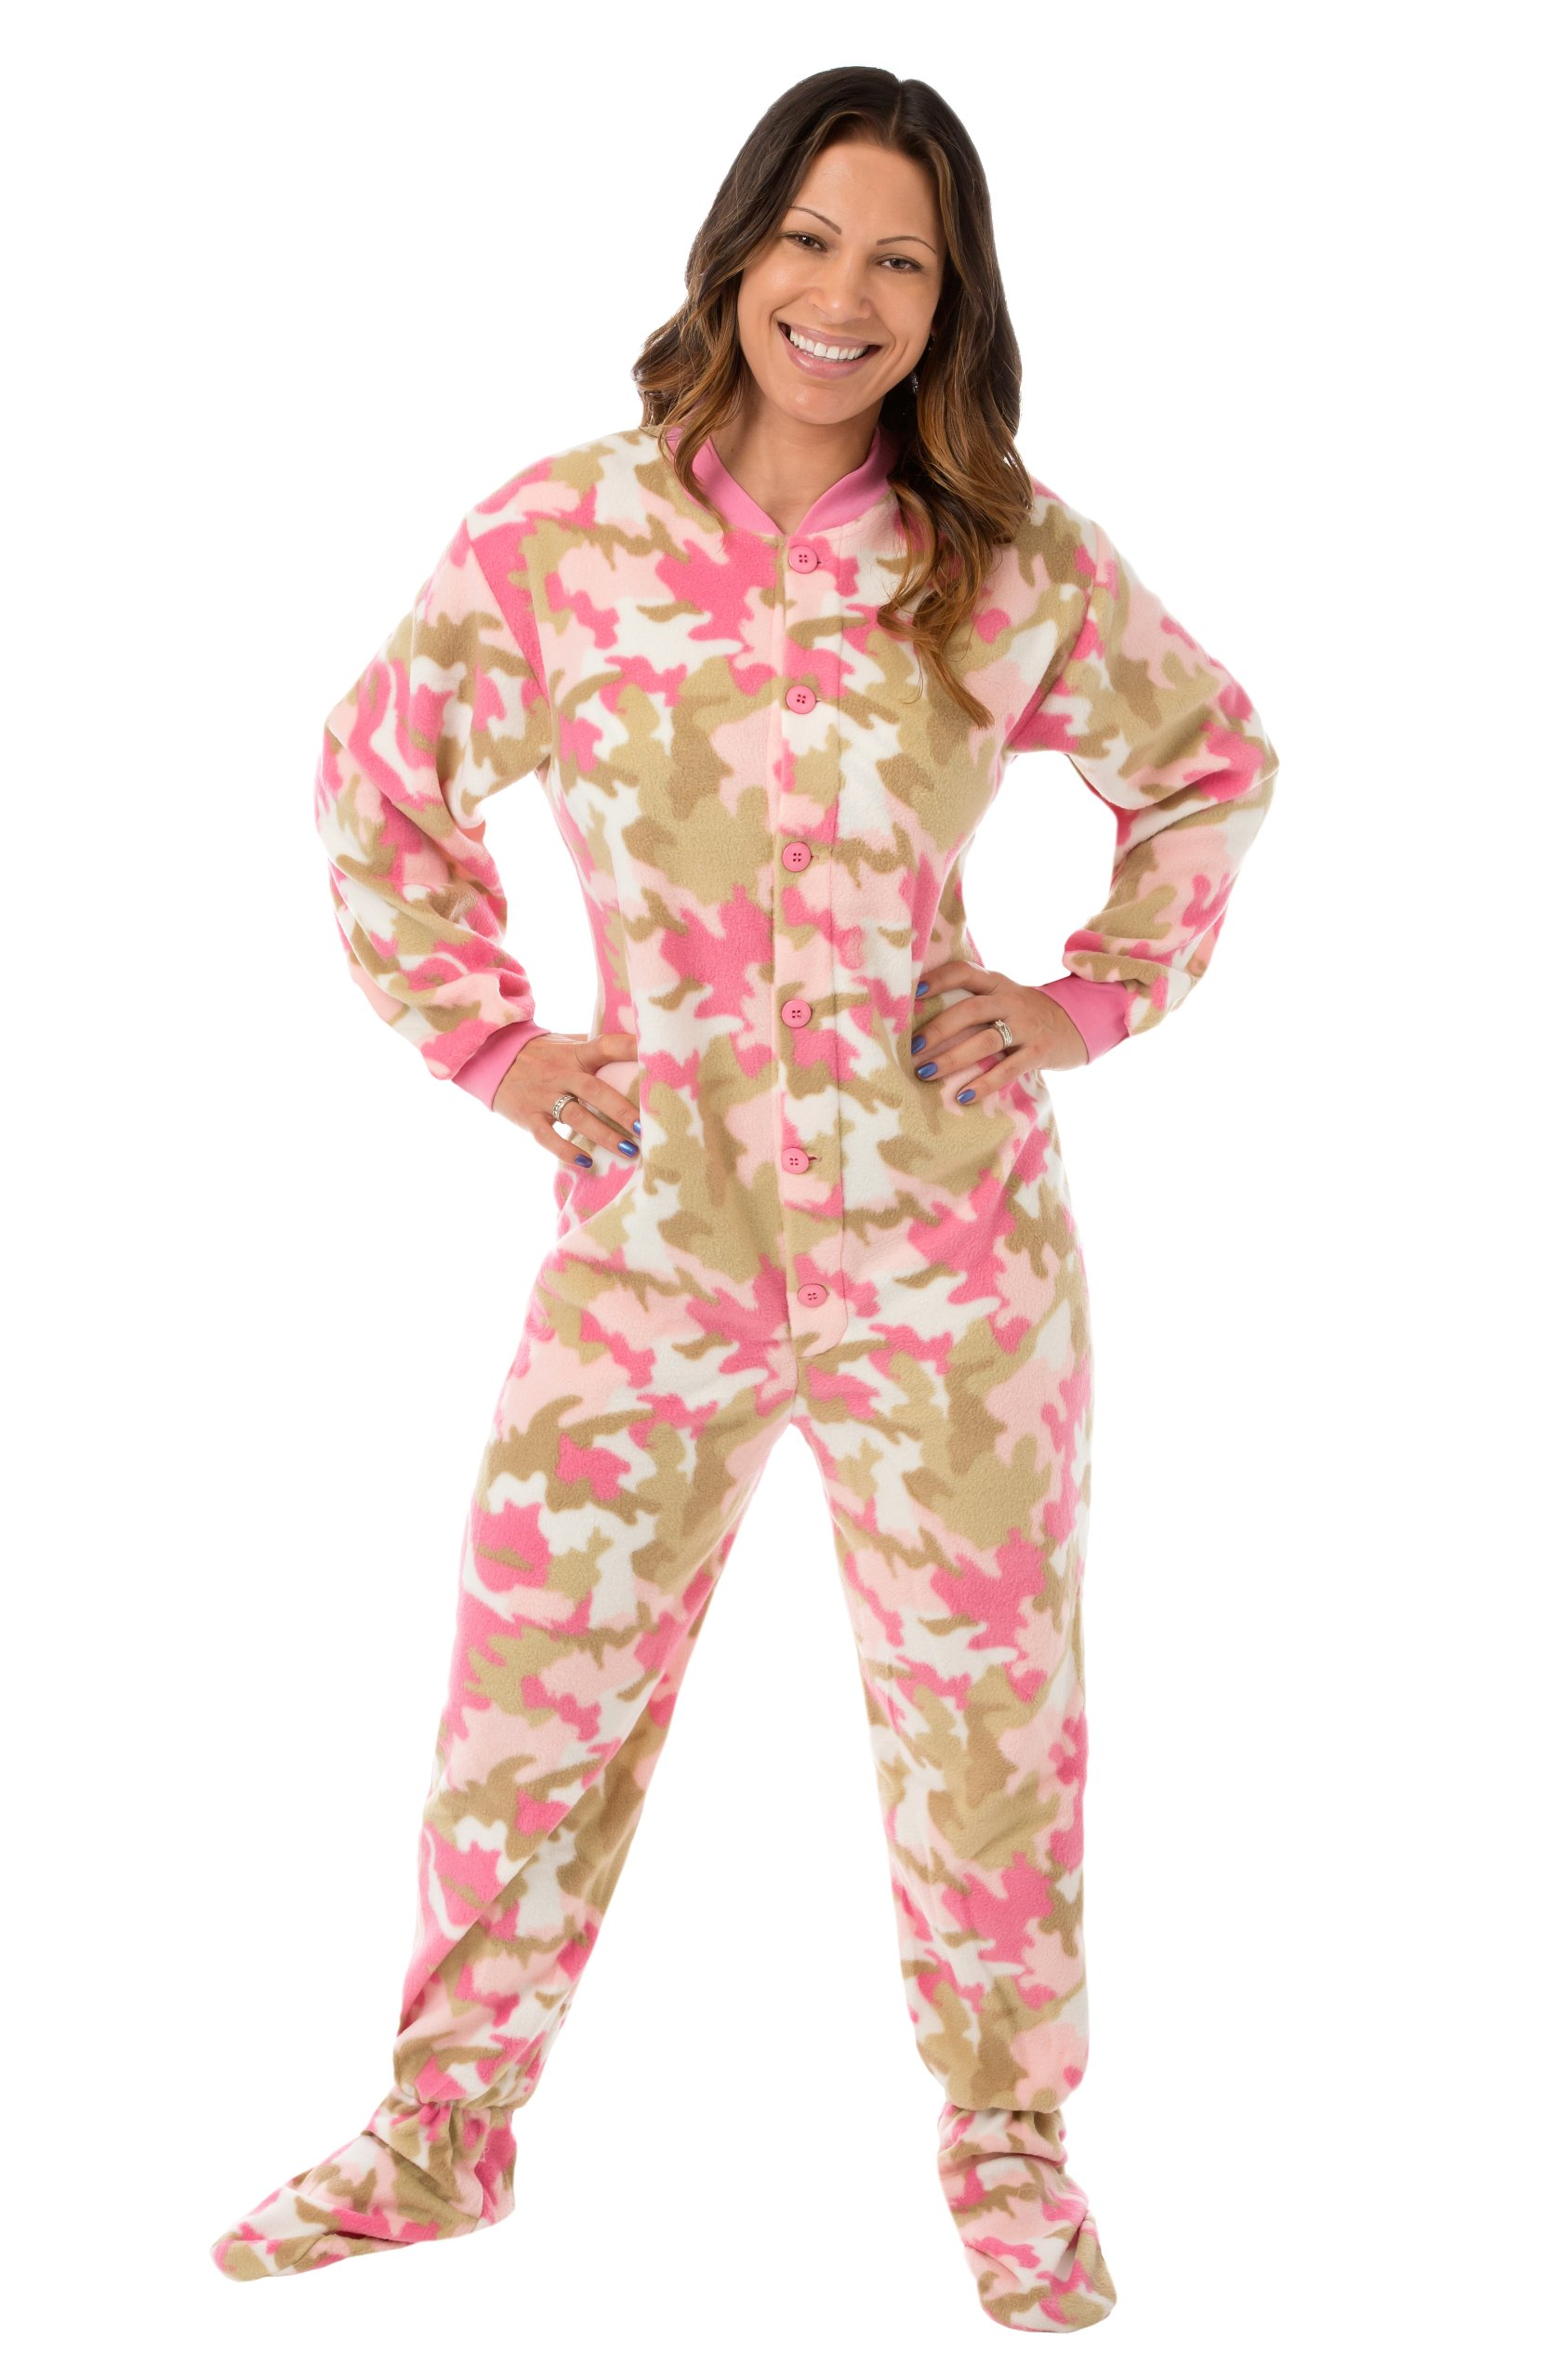 Pink Camouflage Fleece Women's Footed Onesie Pajamas with Drop Seat